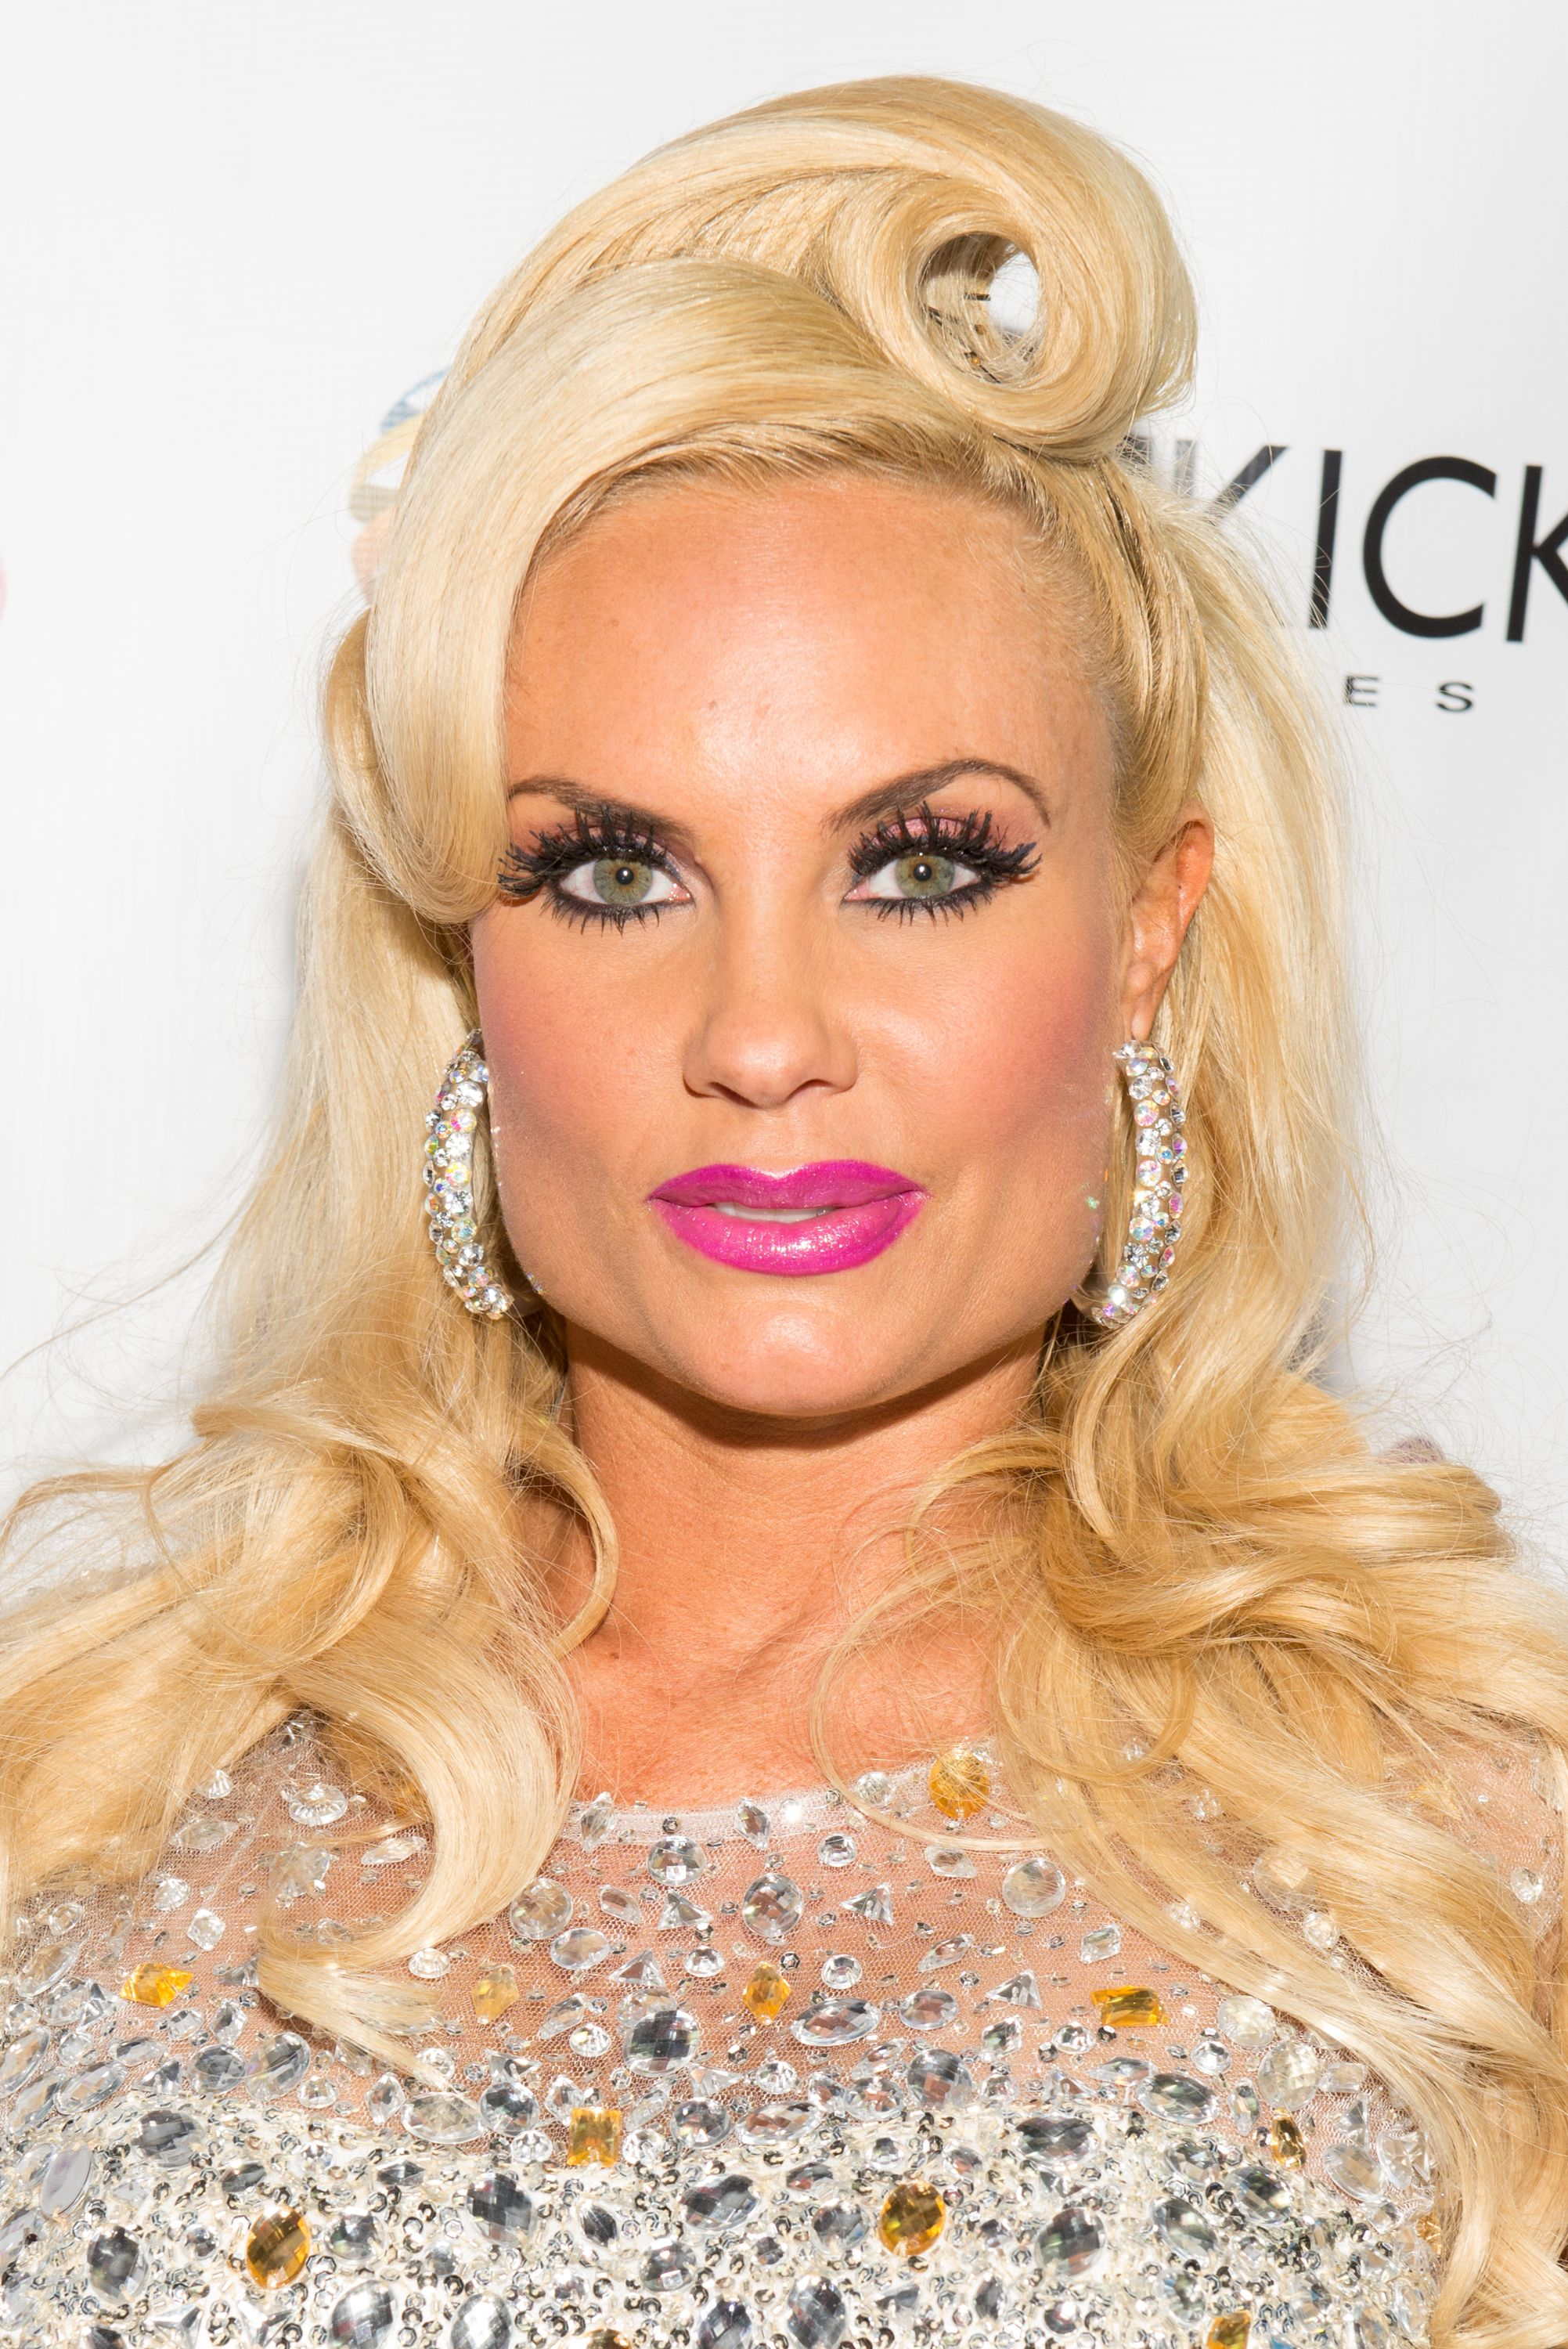 """Coco Austin during """"Coco & The Vanity Vixens"""" at Highline Ballroom on May 12, 2014 in New York City. 